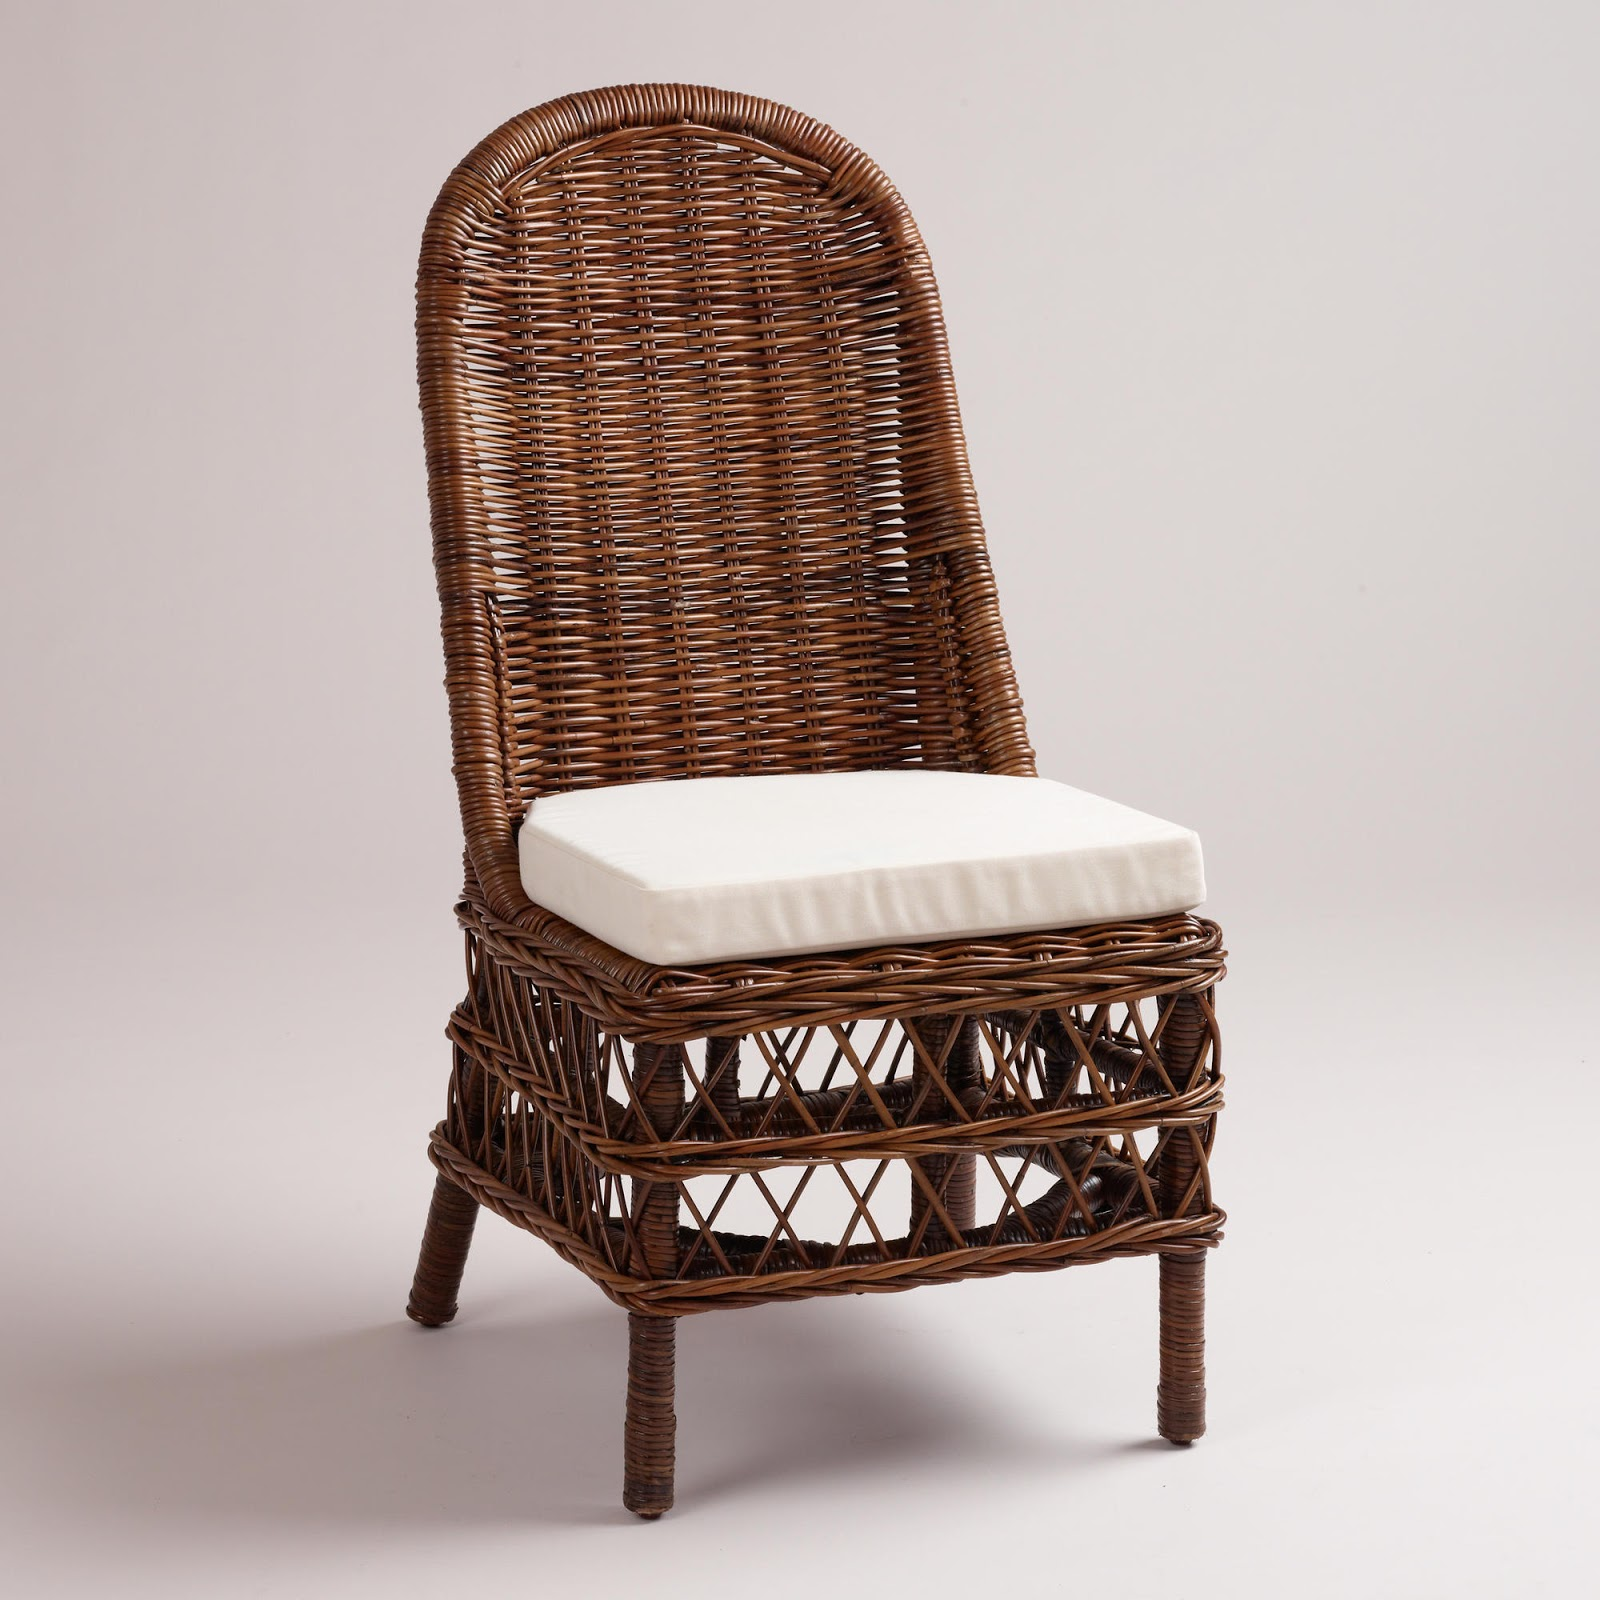 Woven Chair Vignette Design Musical Rattan Chairs